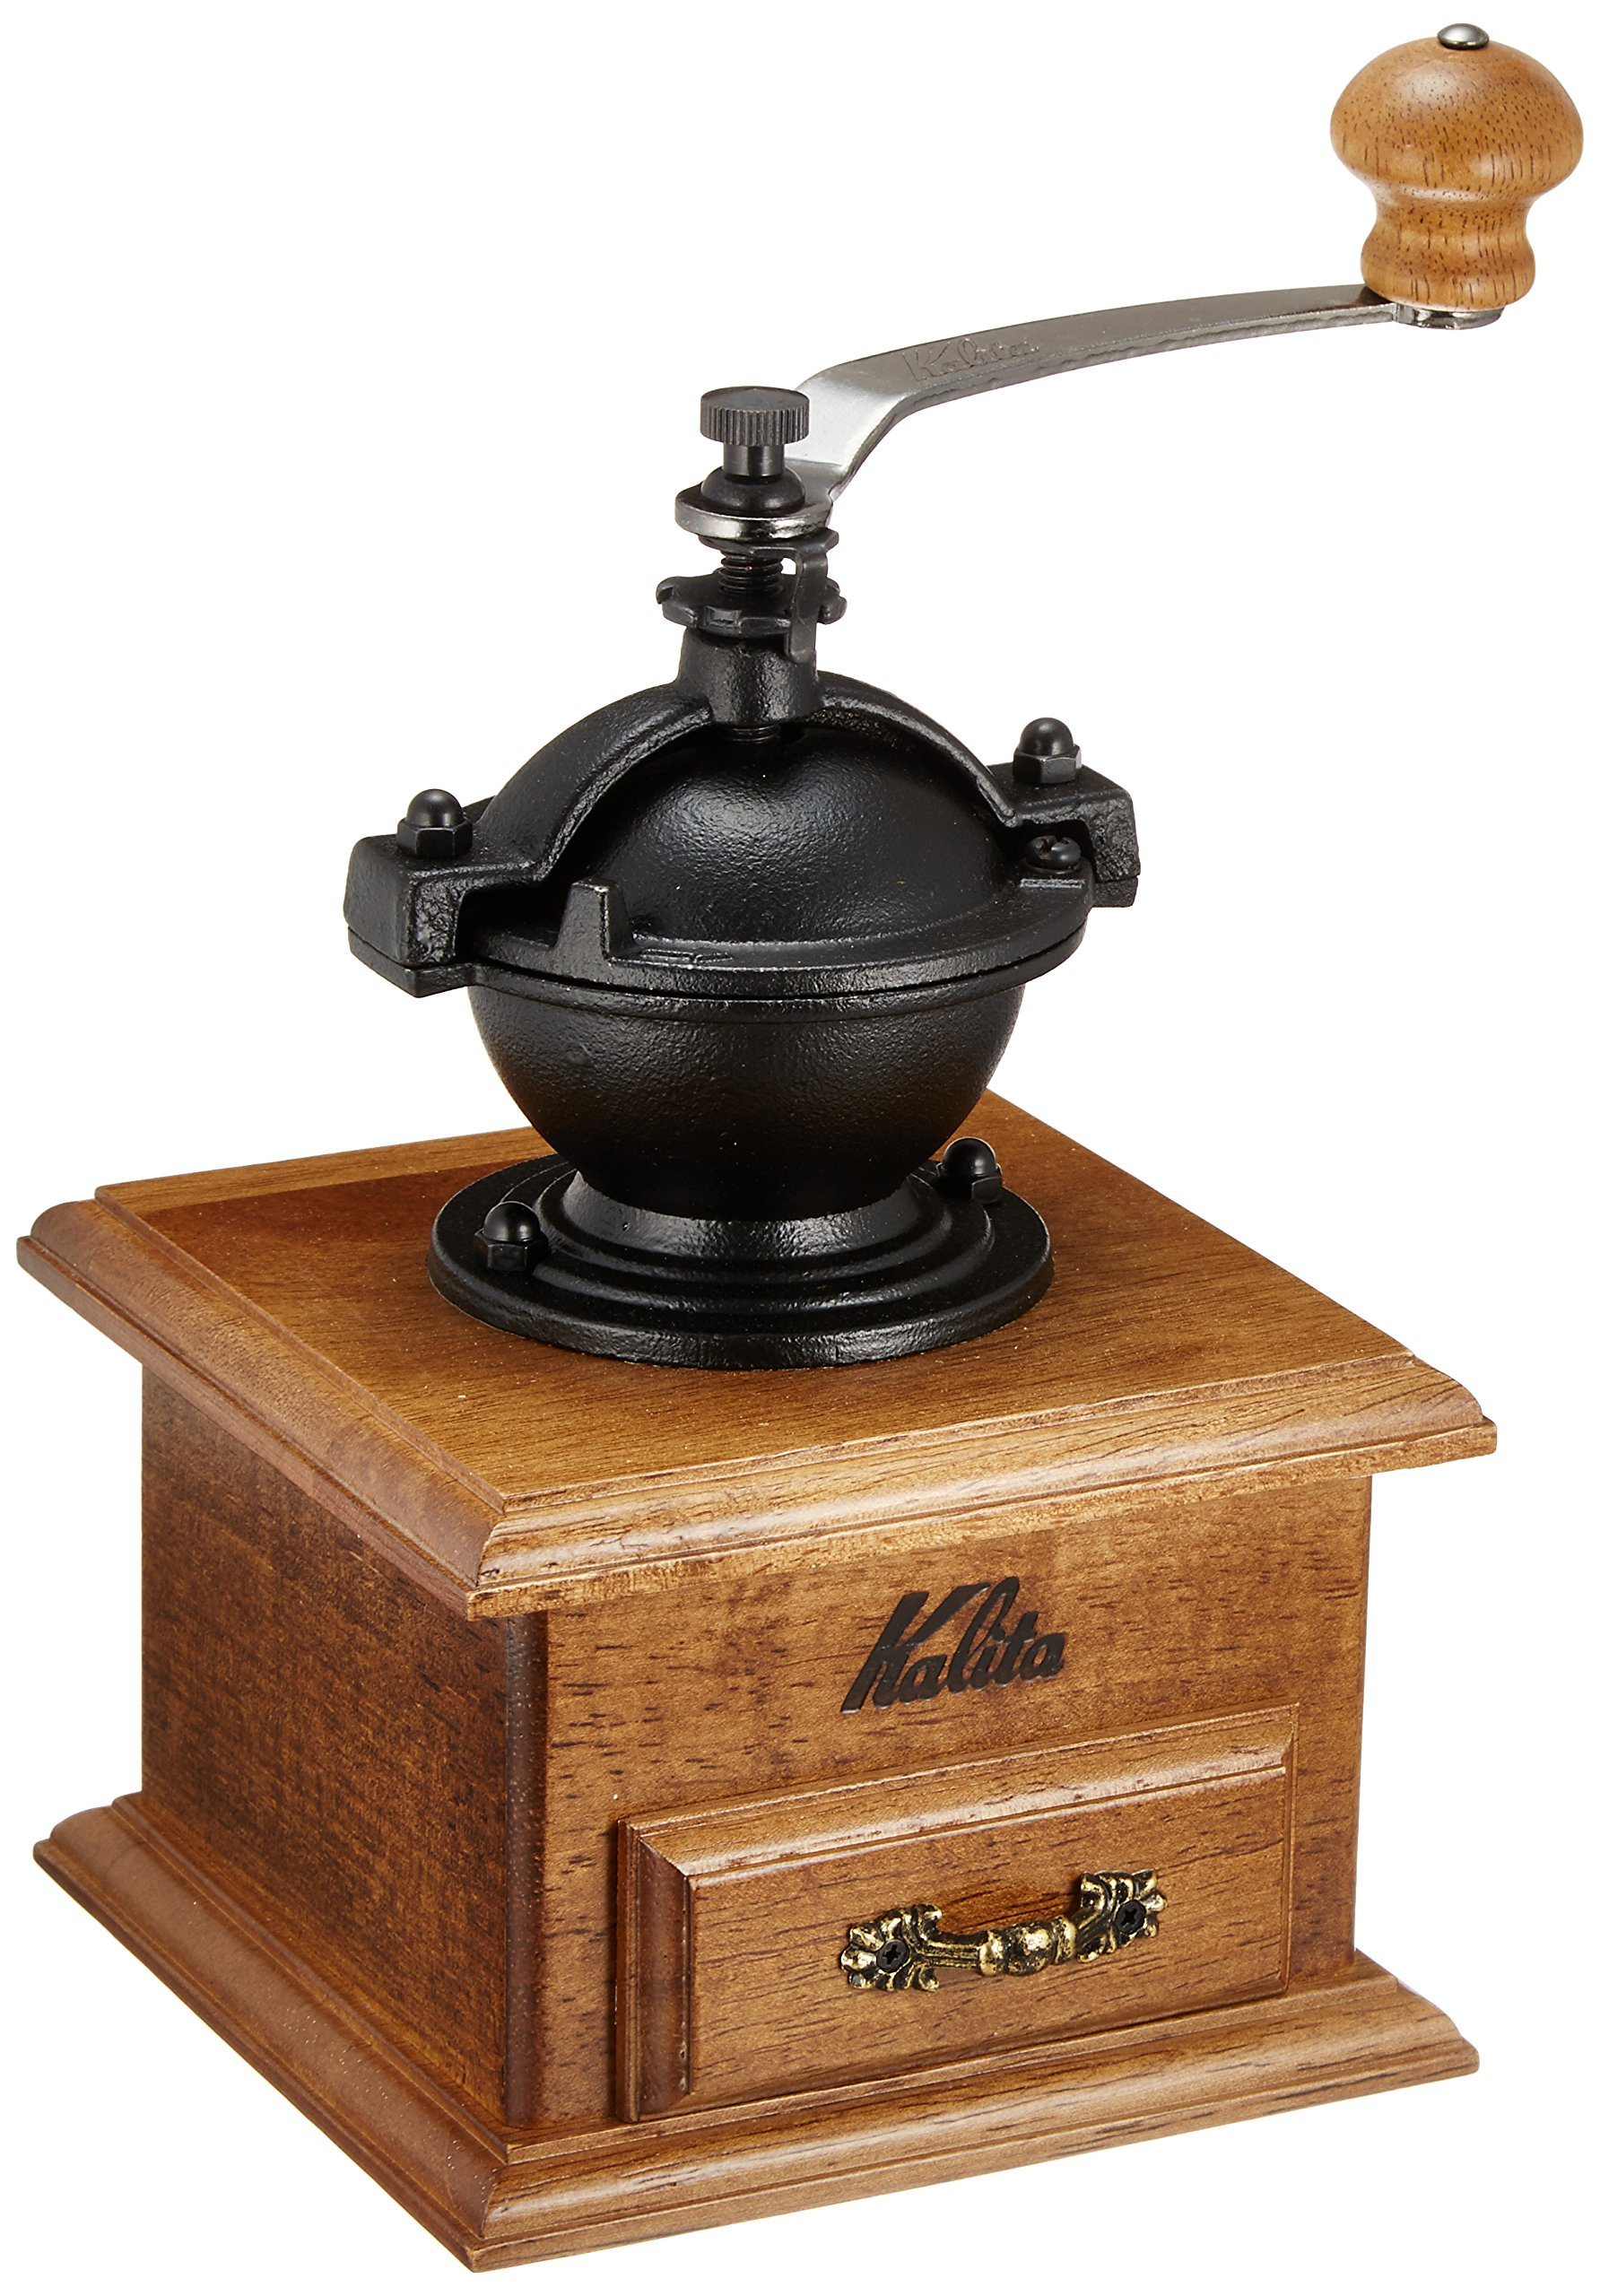 Kalita Classic Coffee mill by Kalita (Carita) by Kalita (Carita)